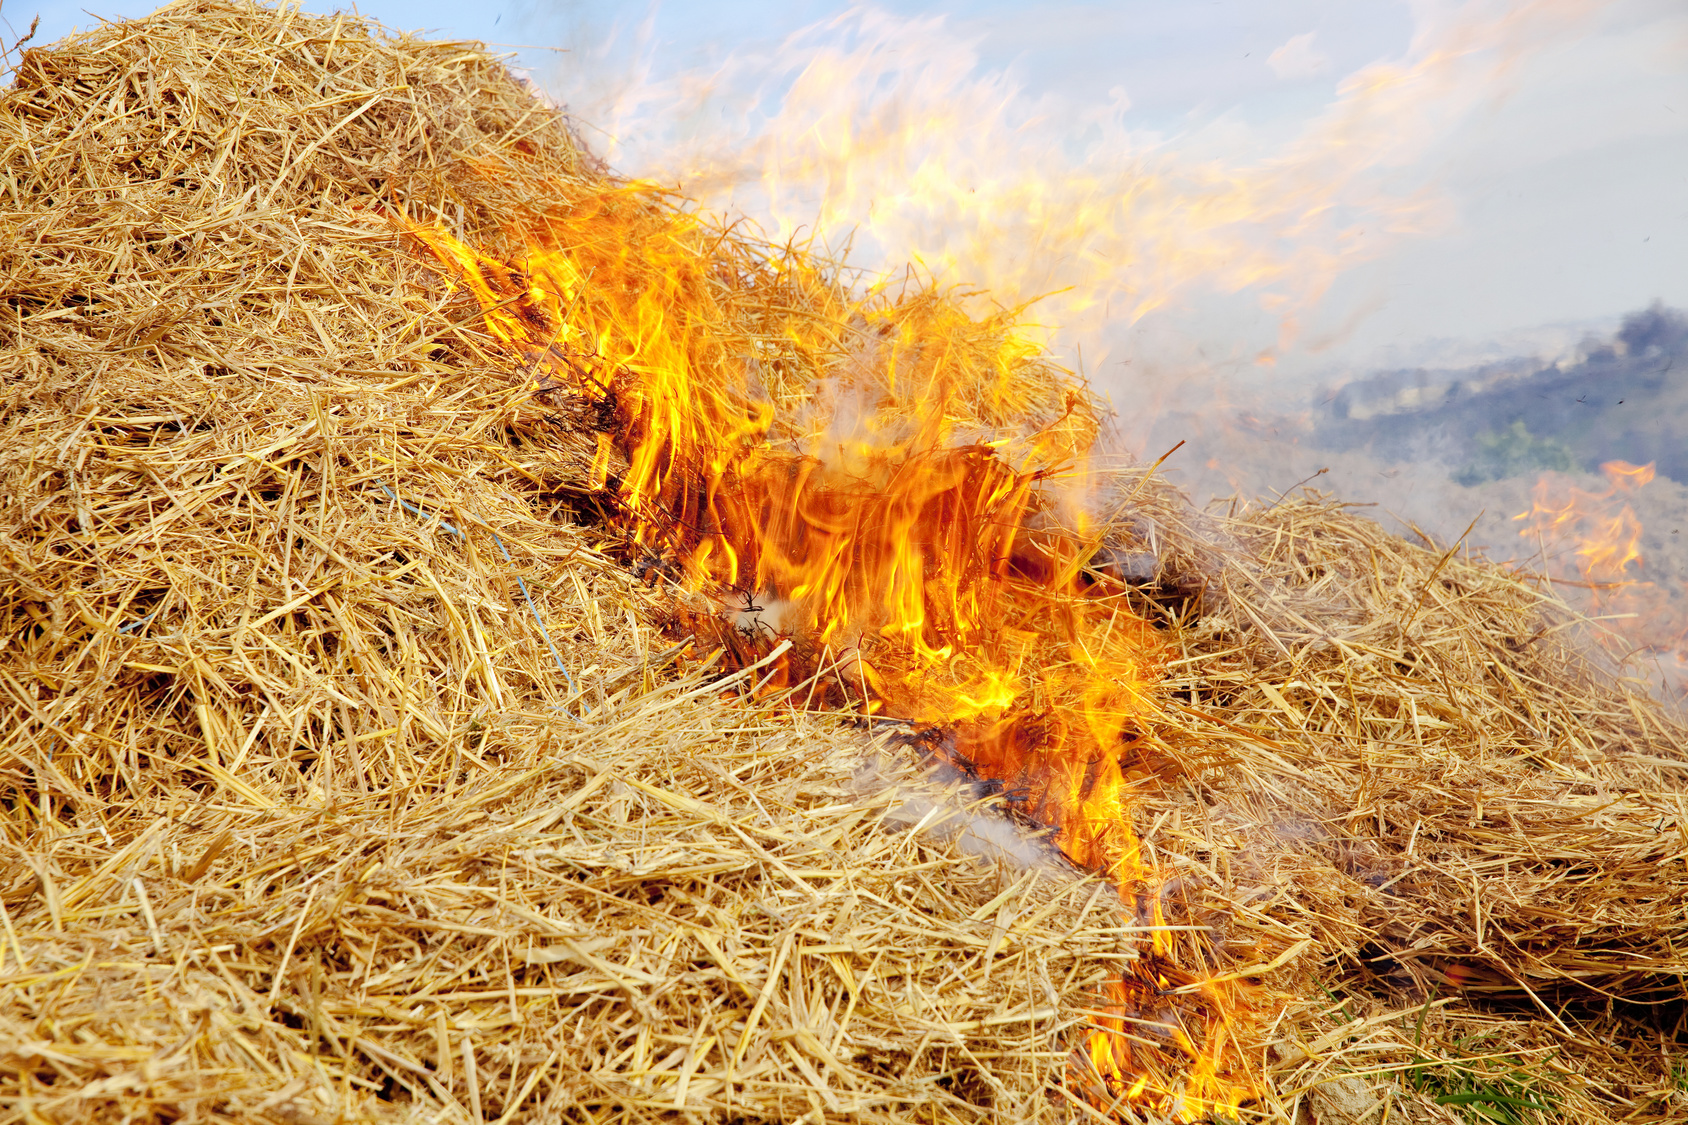 Hay on Fire